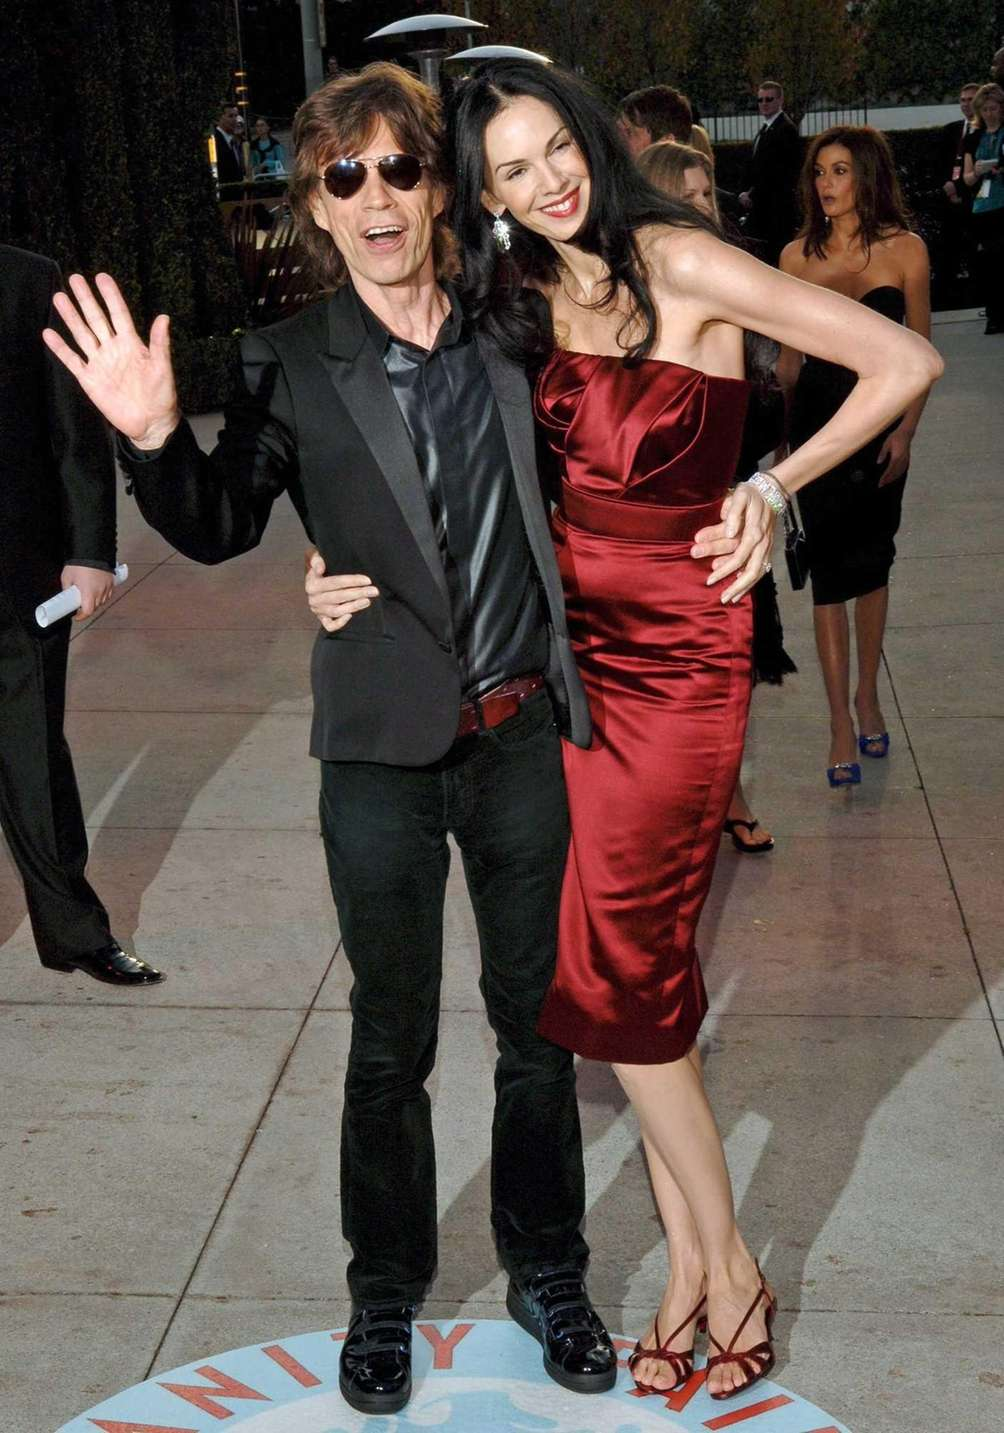 Rolling Stones front-man Mick Jagger and model-turned-celebrity stylist